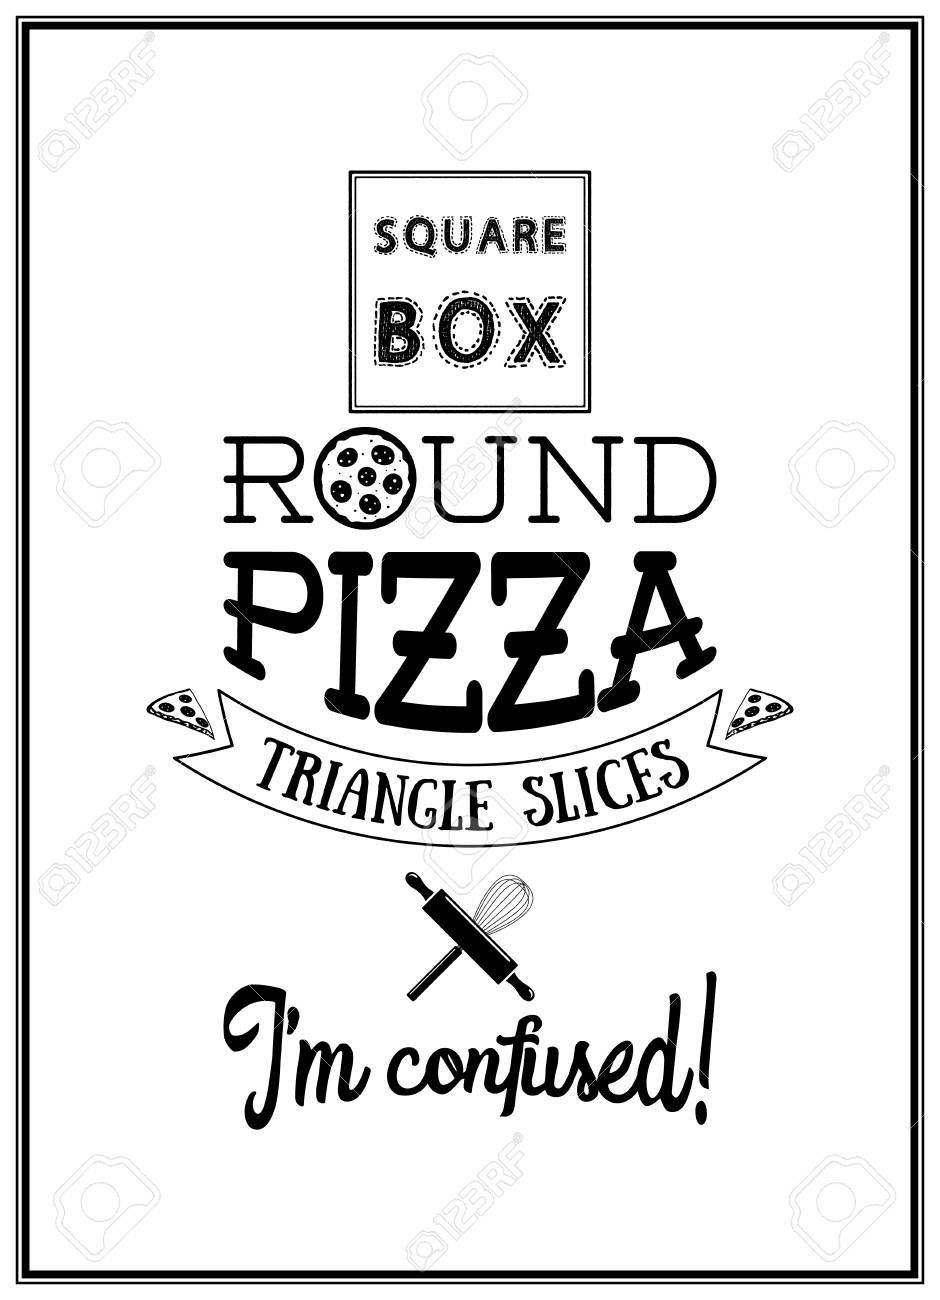 Square Box Square Box Round Pizza Triangle Slices I Am Confused Quote Typographical